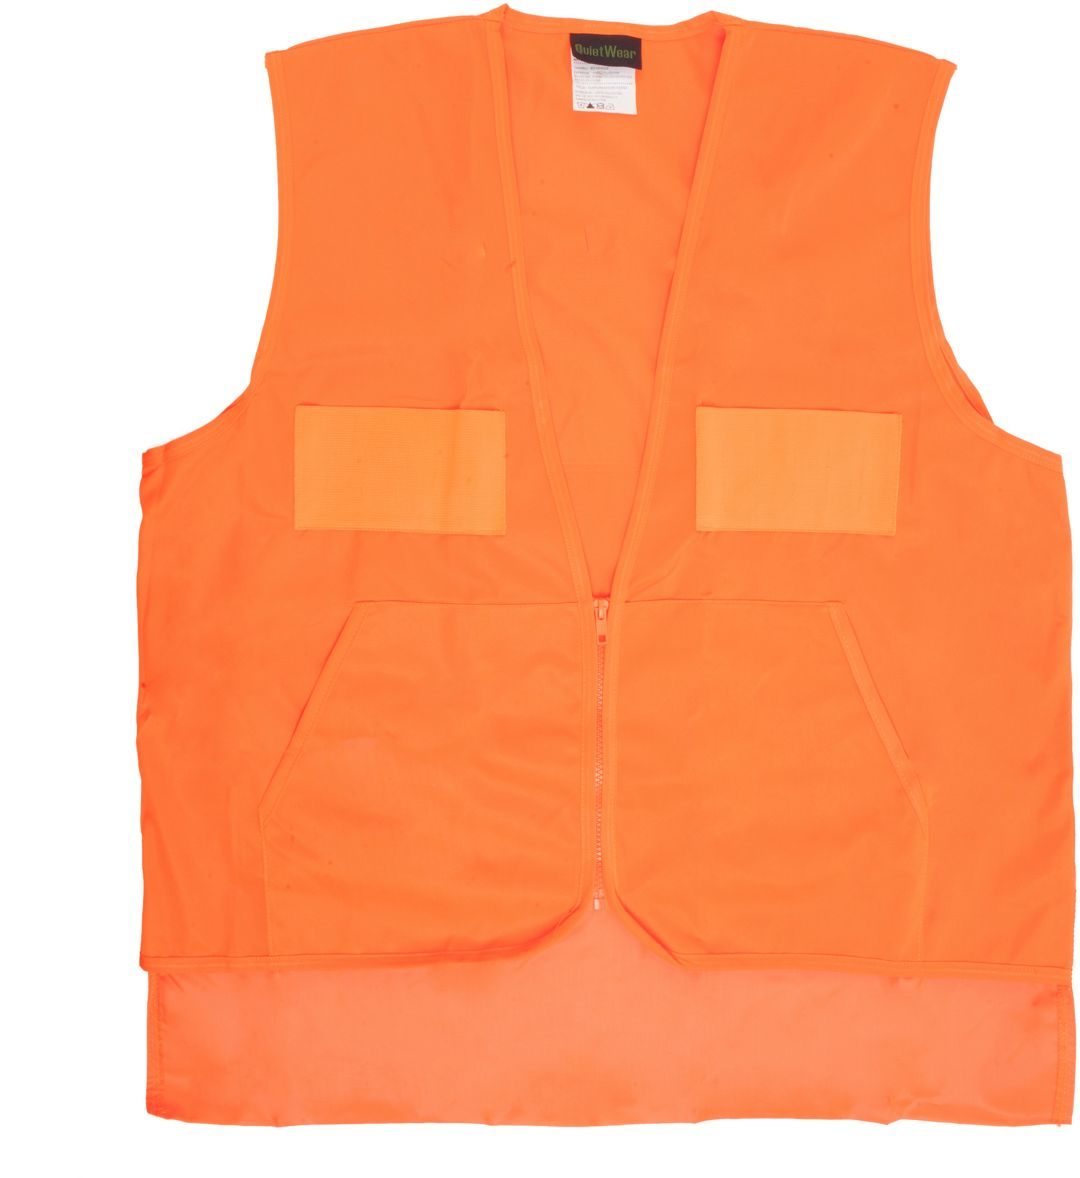 f311c064bb35a QuietWear Men's Hunting Safety Vest | DICK'S Sporting Goods